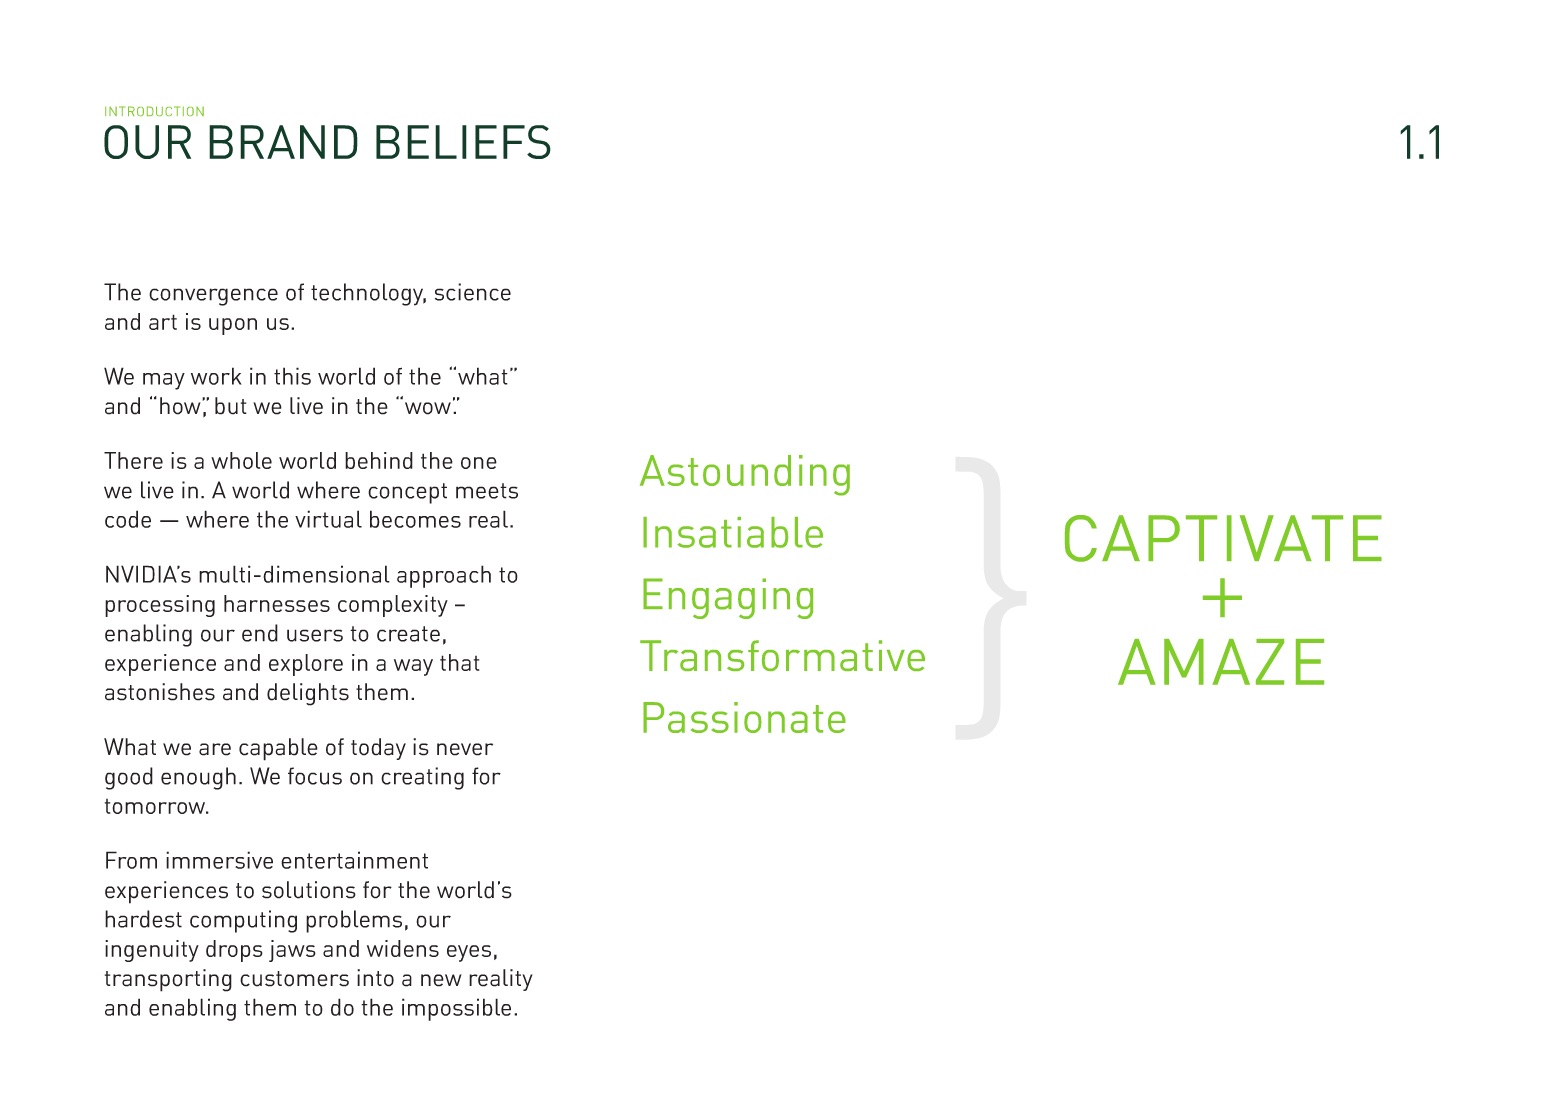 brand standards guide brand marketing blog example from nvidia